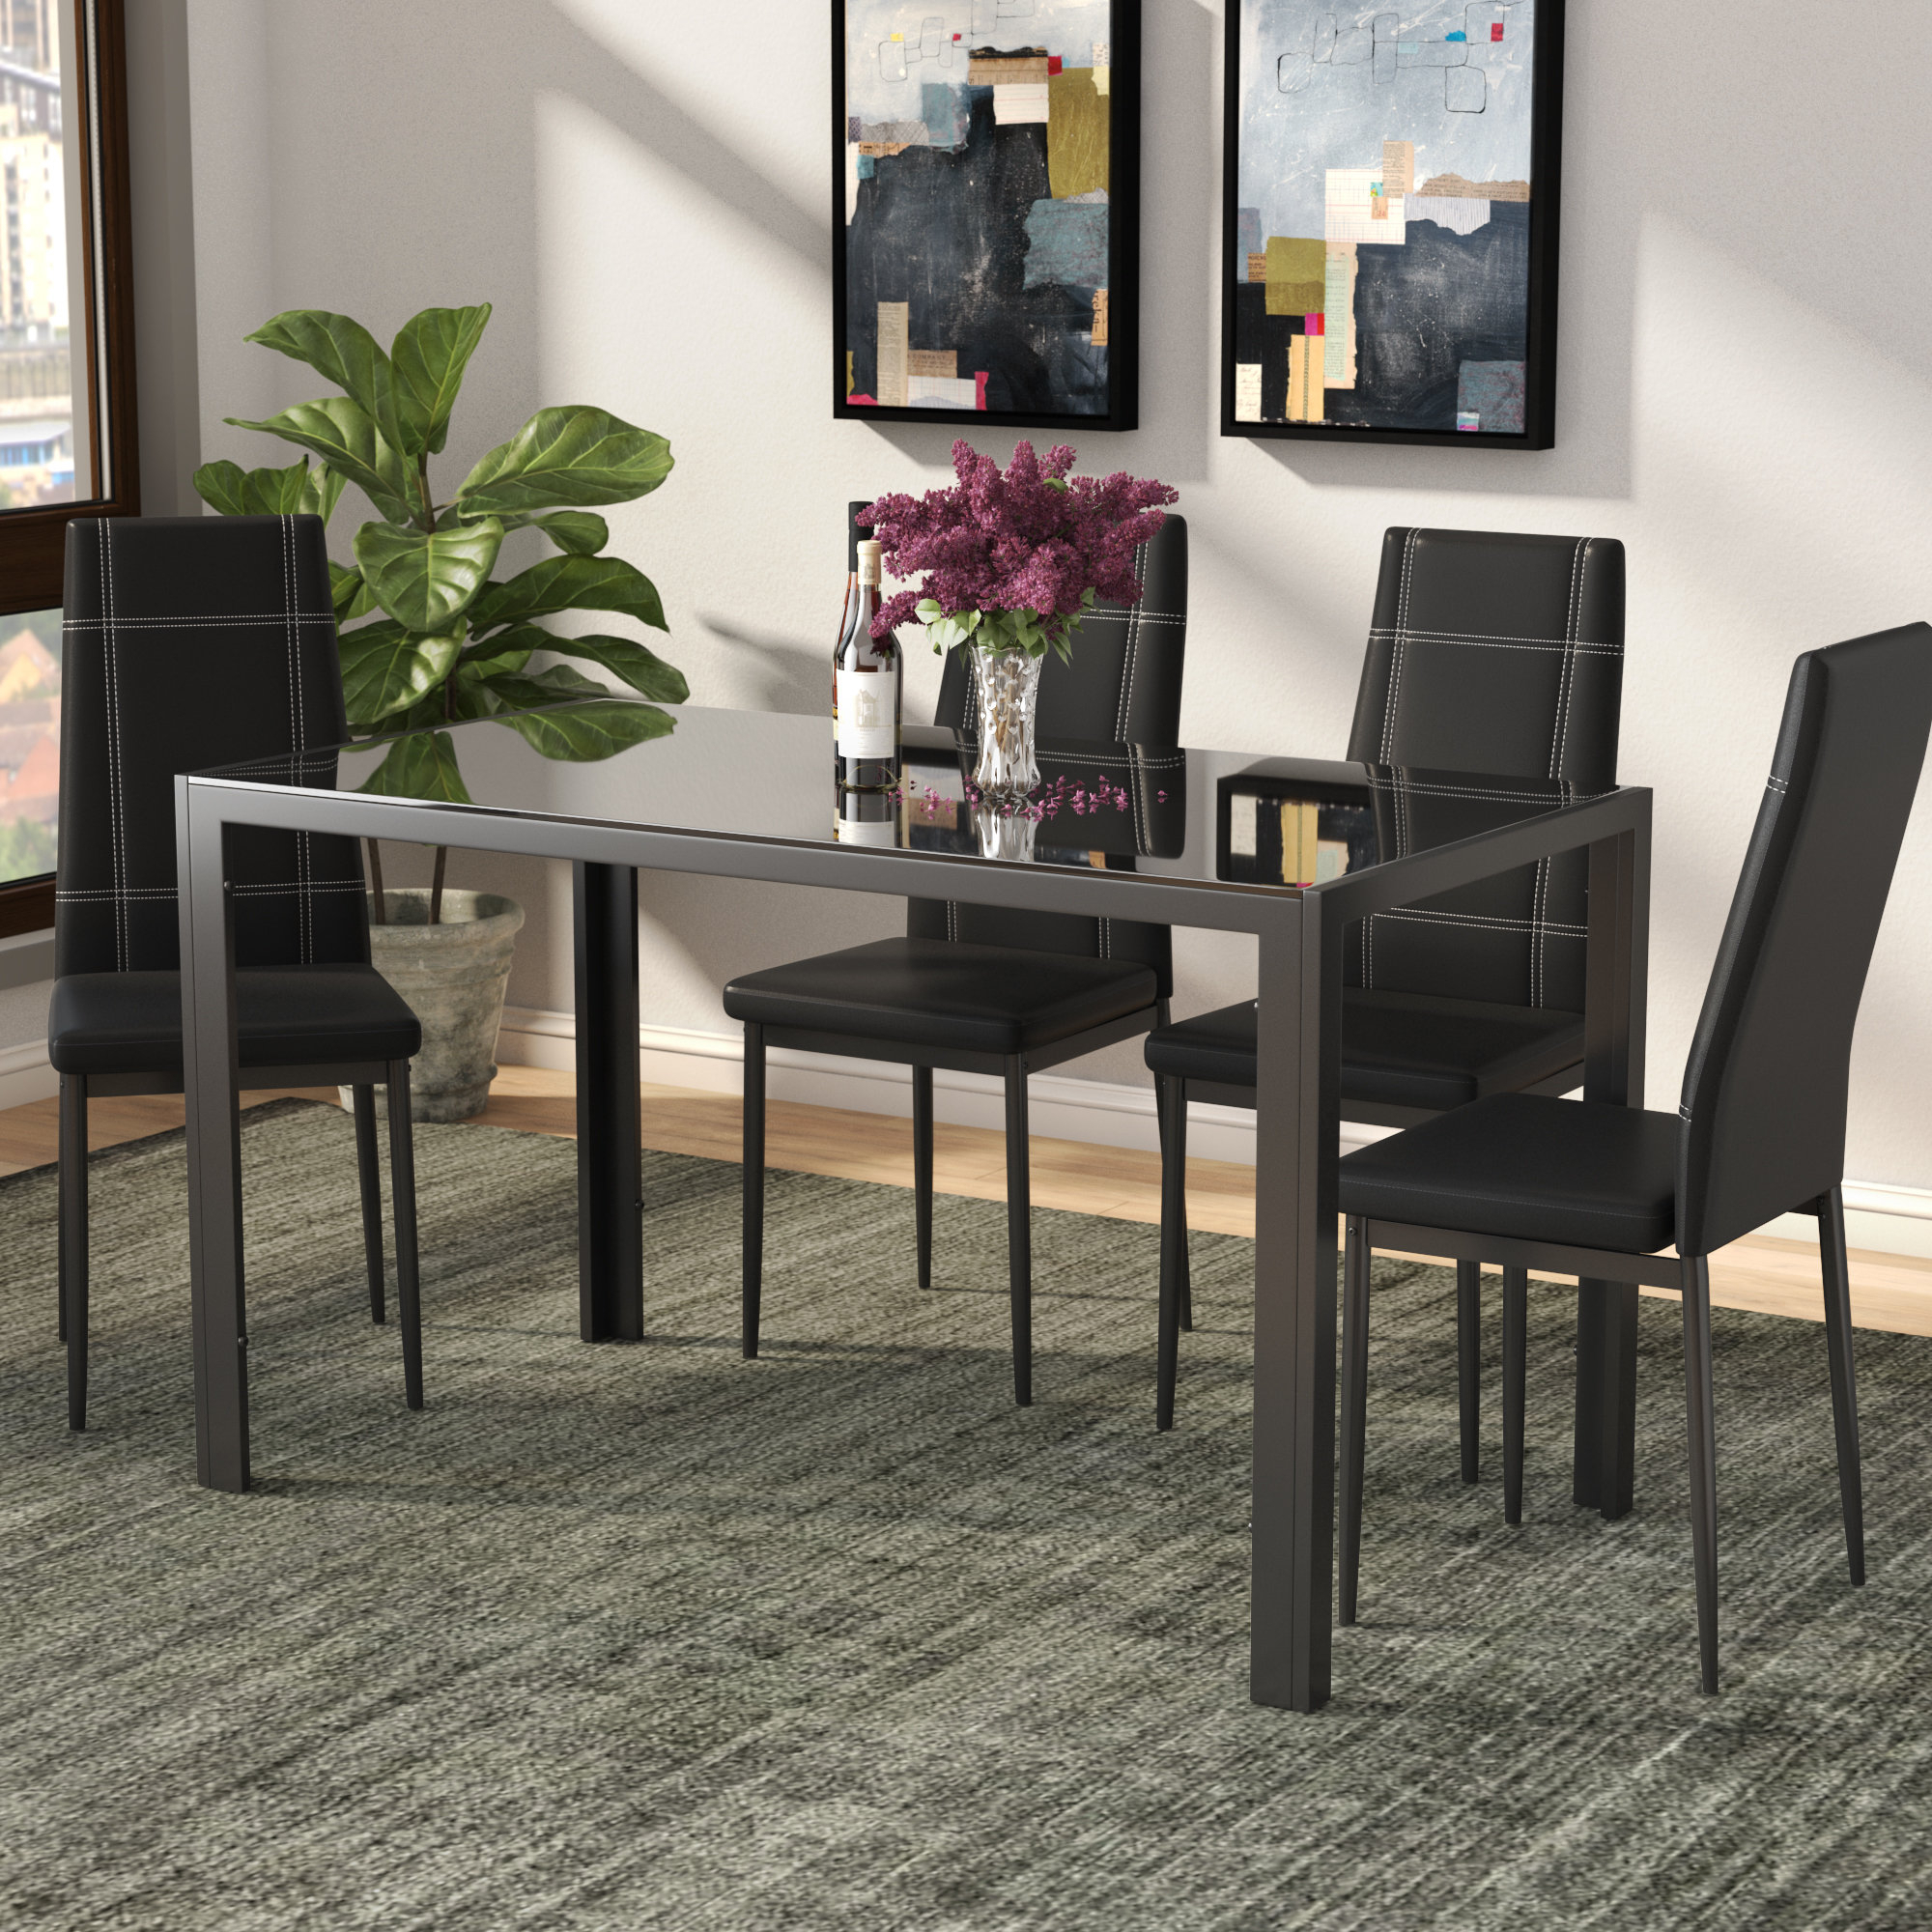 Ebern Designs Maynard 5 Piece Dining Set Pertaining To 2018 Mukai 5 Piece Dining Sets (Photo 12 of 20)